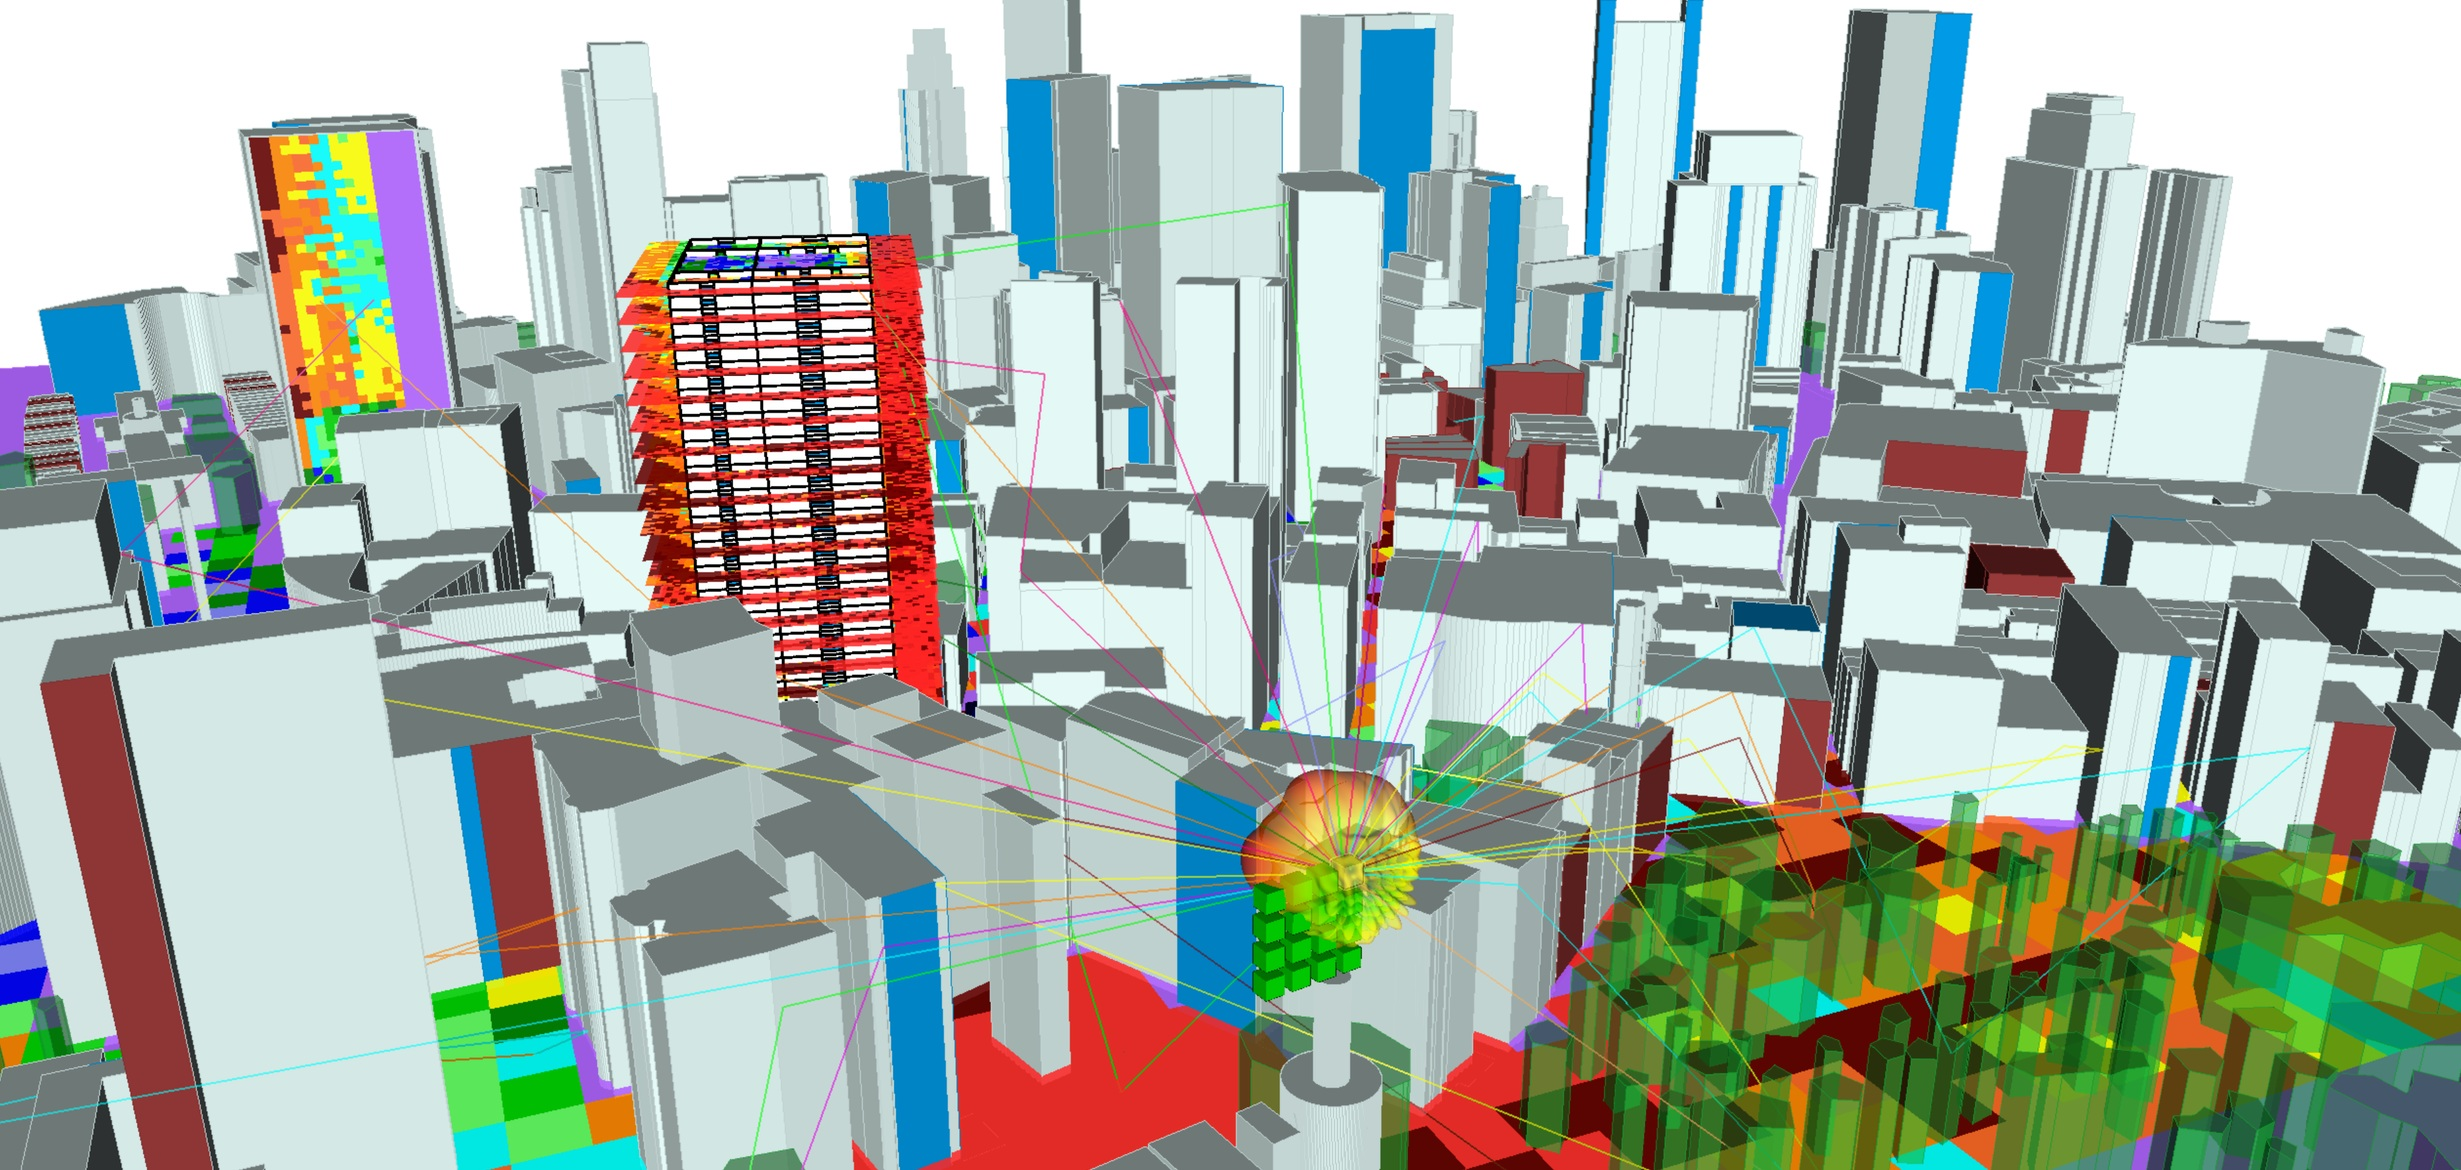 Wireless InSite can simulate base stations with MIMO antennas in very complex, three-dimensional dense urban scenes